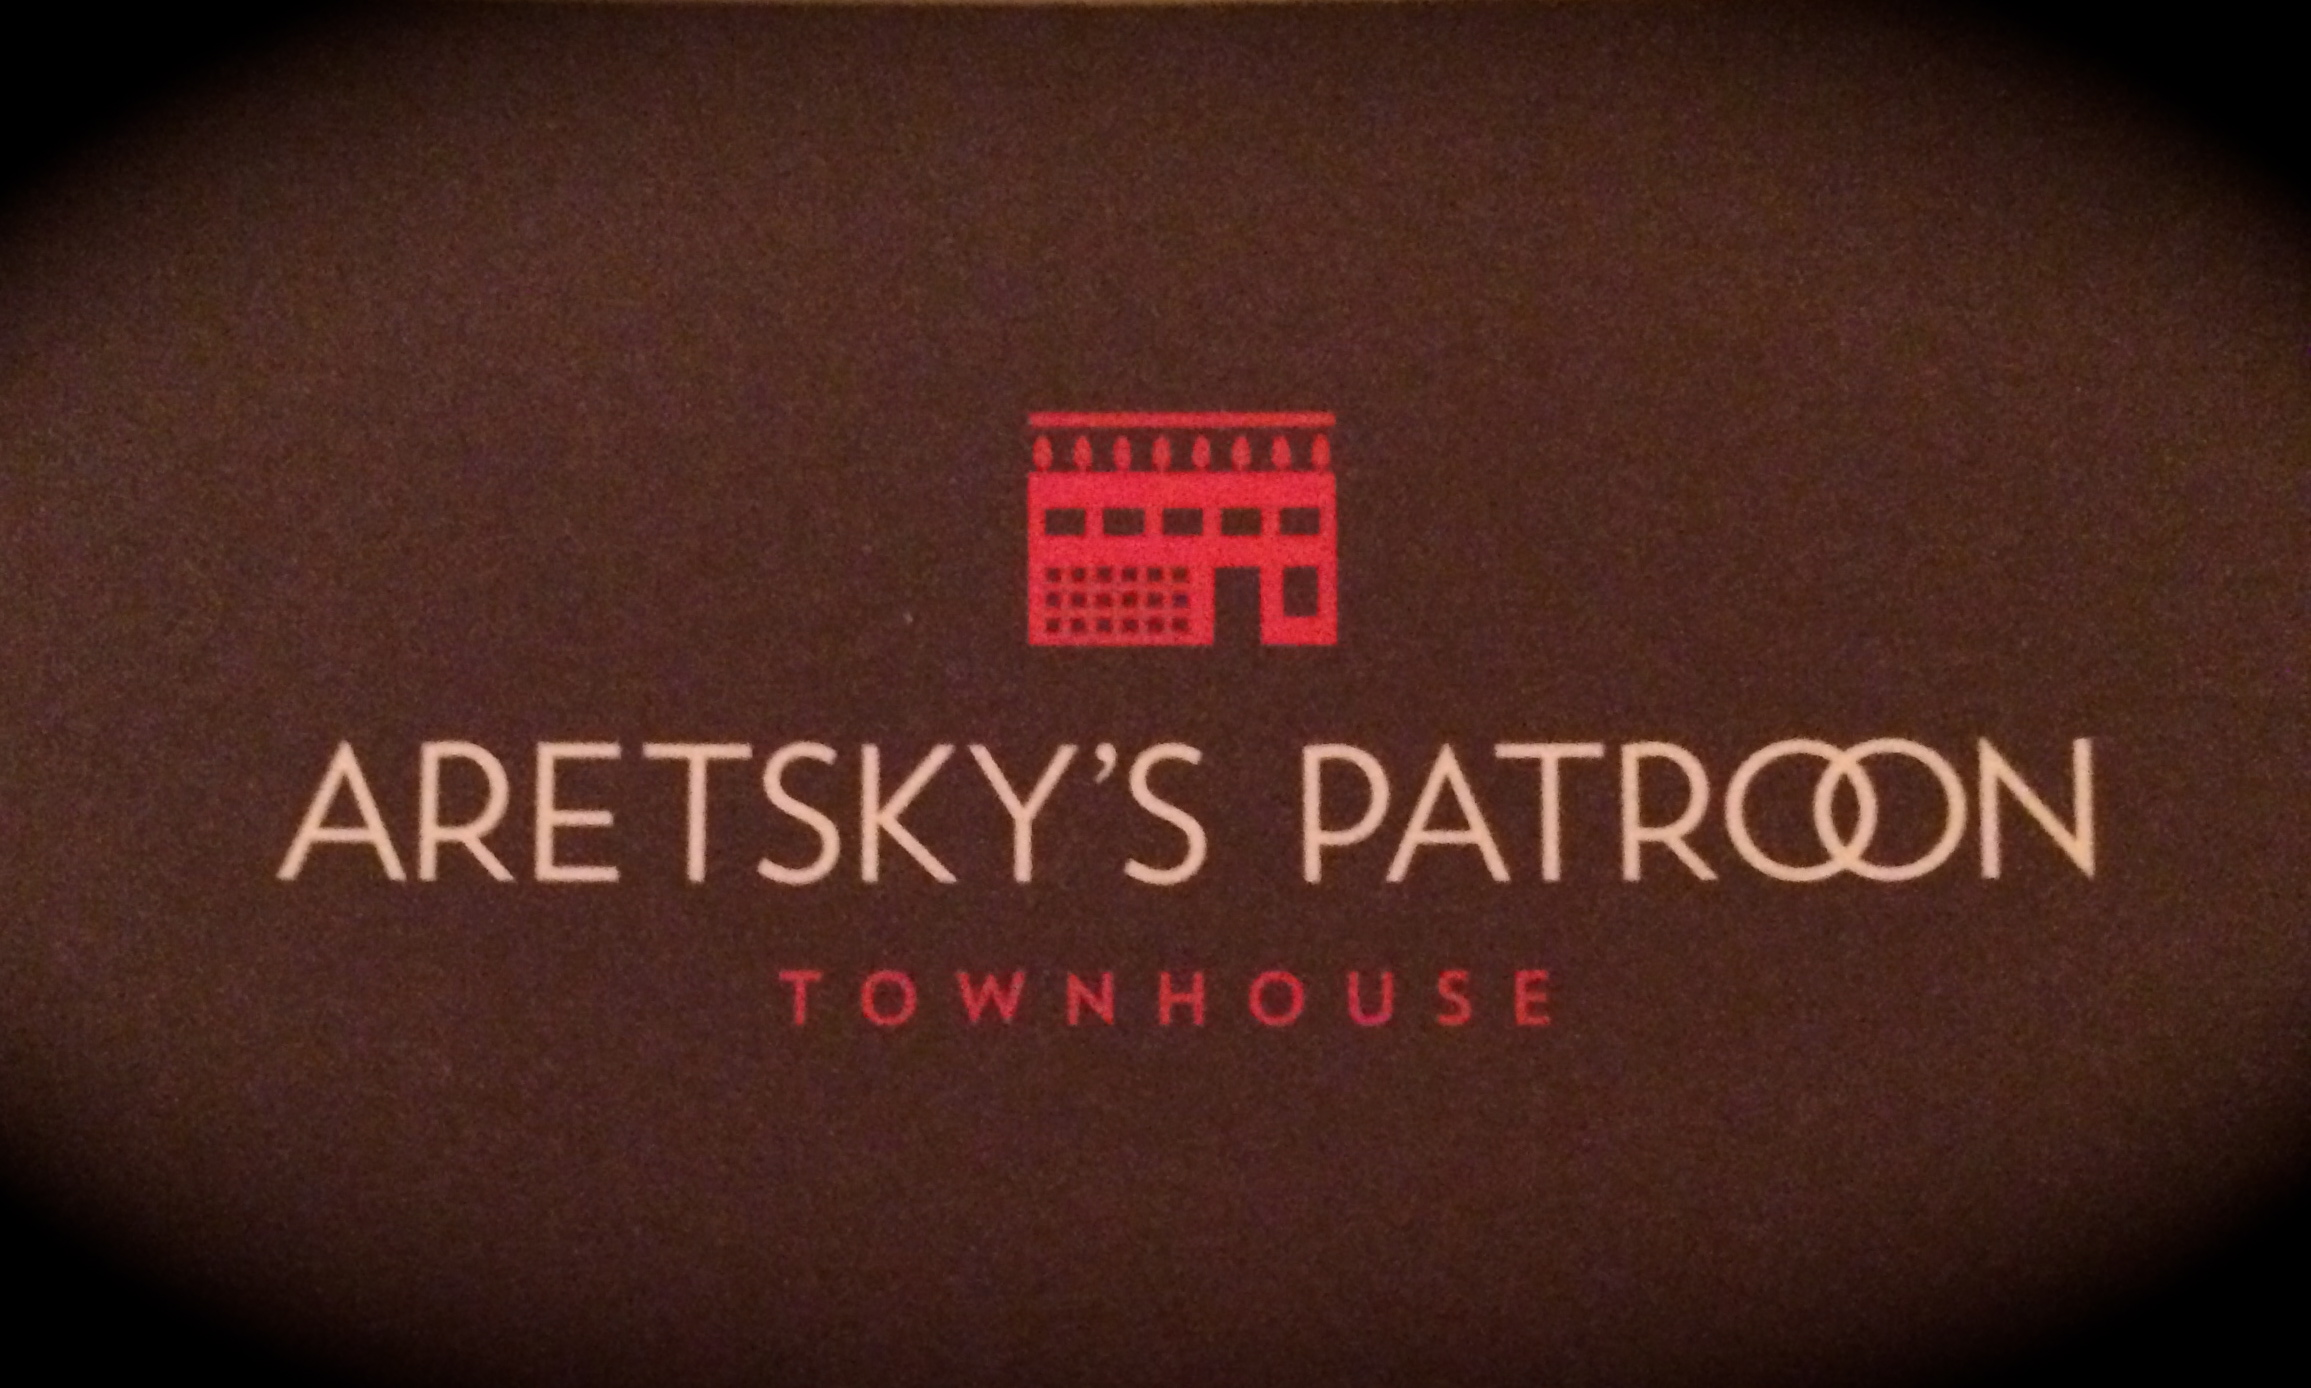 Aretsky's Patroon - The Art of Livin' Top Ranked Restaurant & Saloon